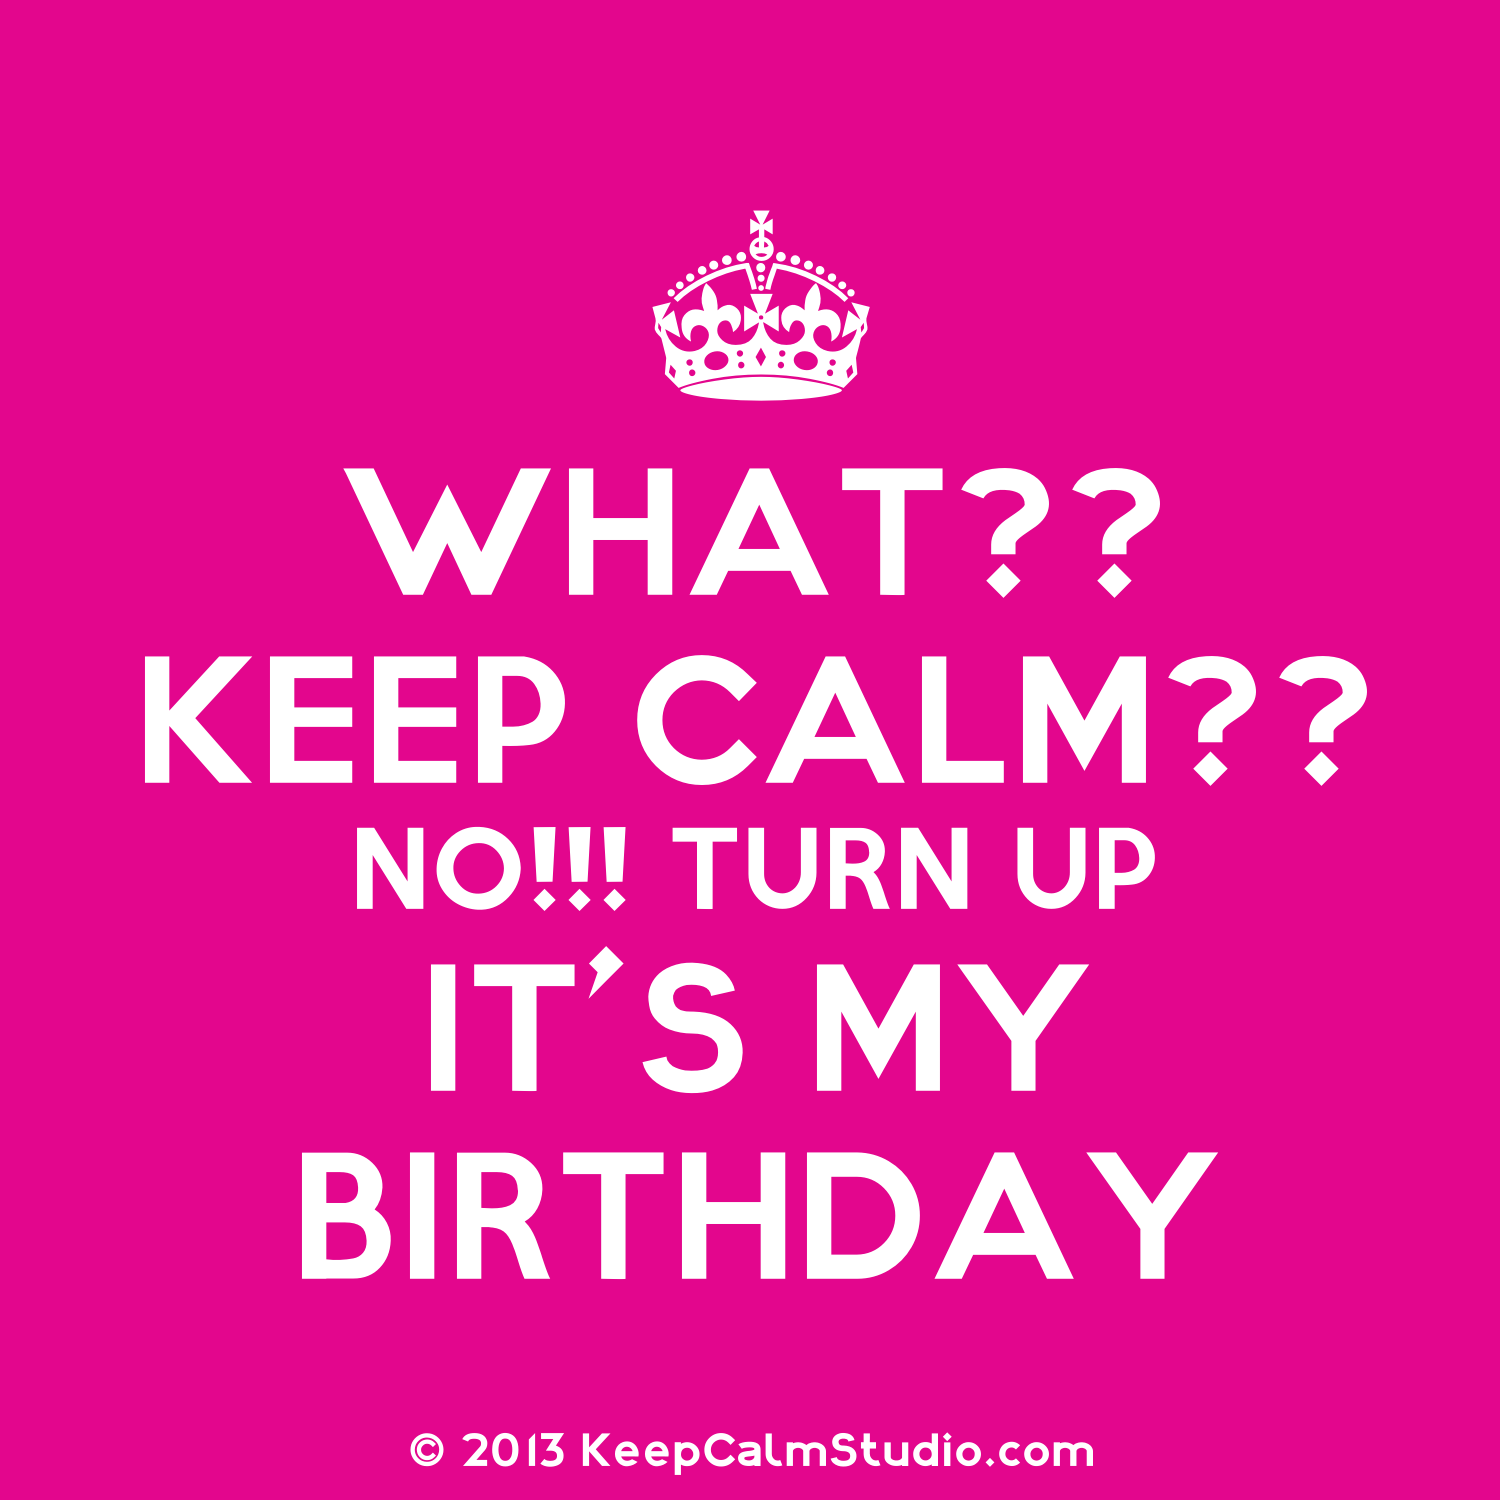 Shirt quotes design quotesgram - Turn Up It S My Birthday Design On T Shirt Poster Mug And Many Other Products